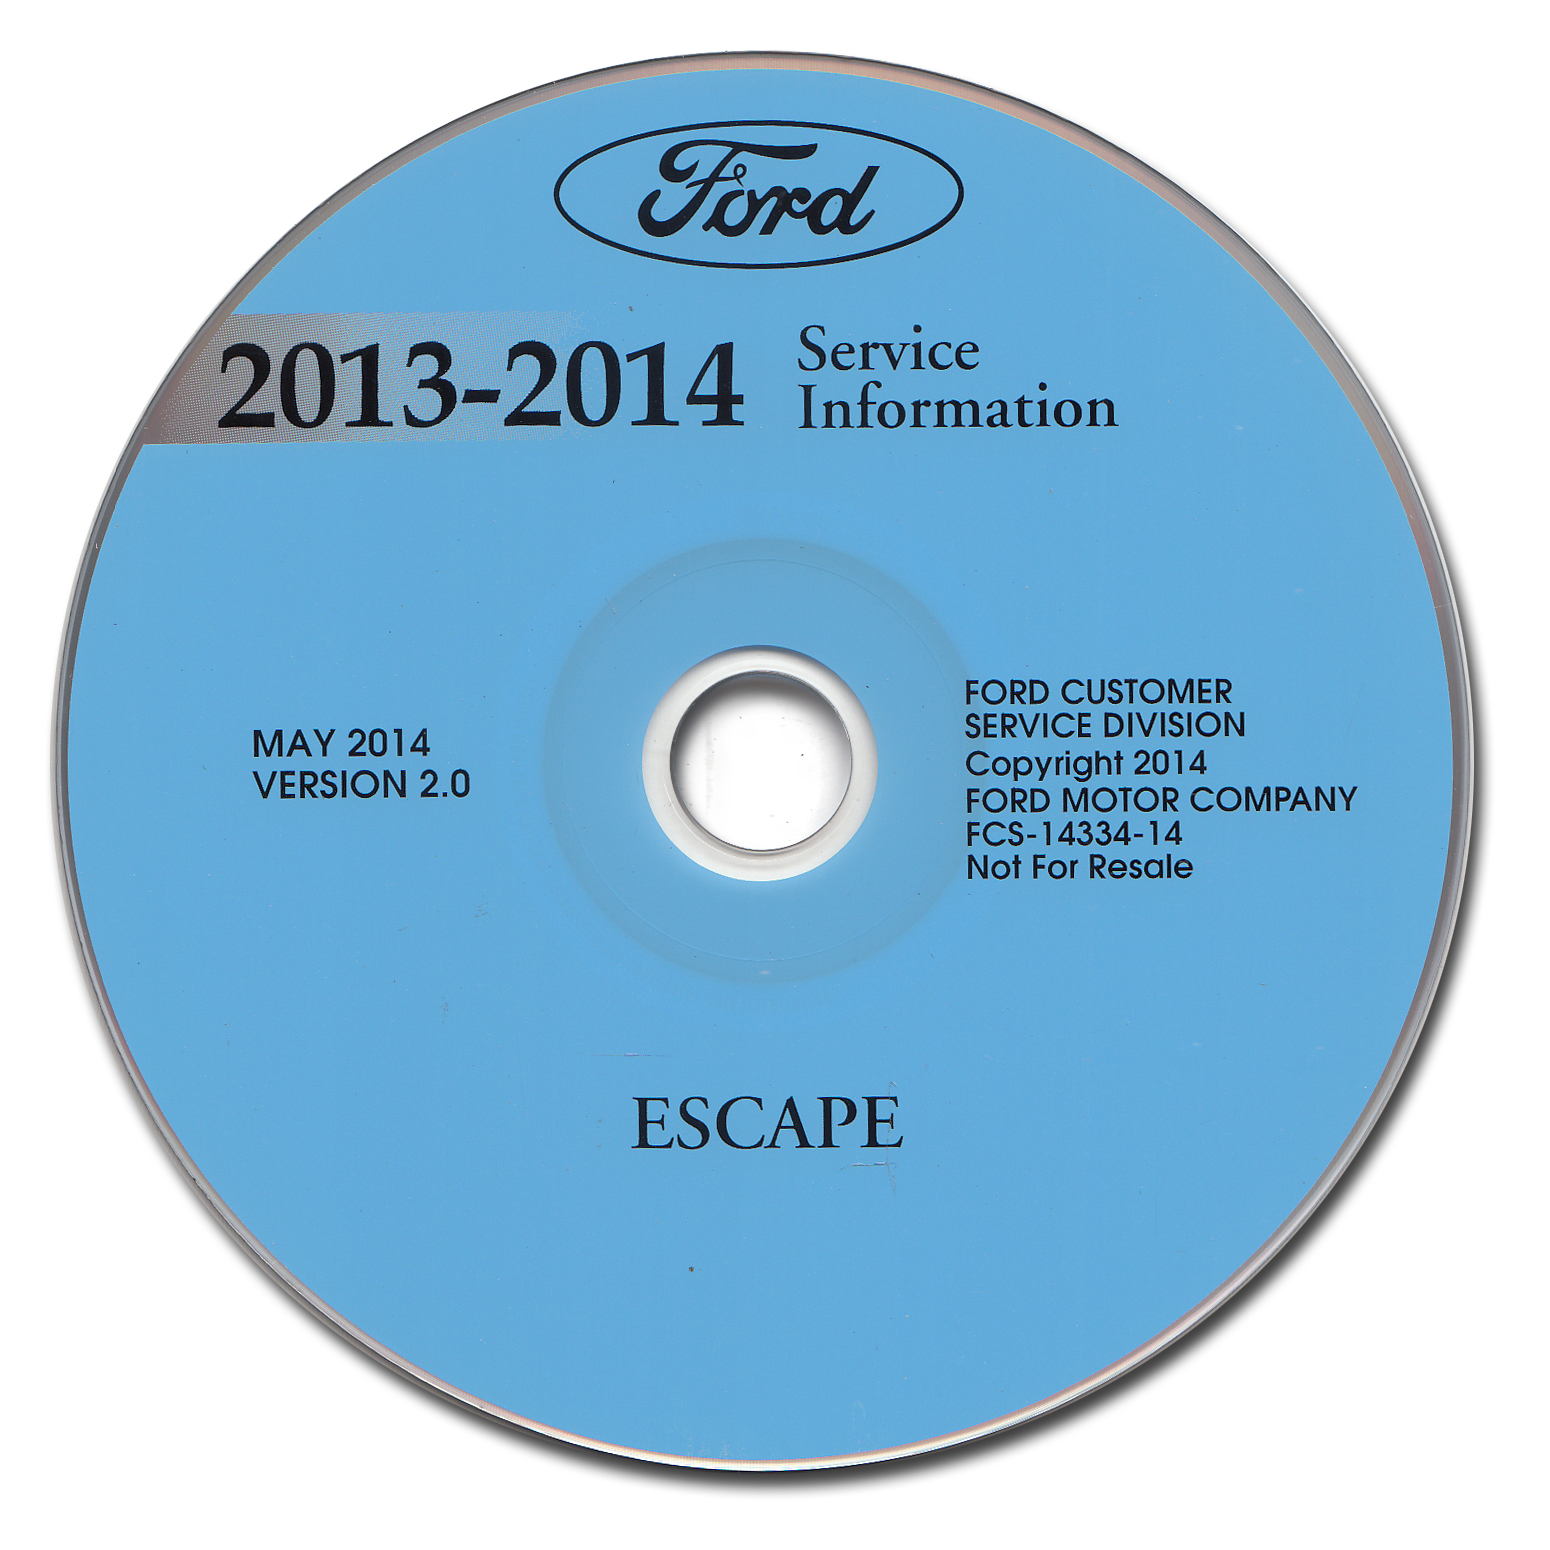 2014 Ford Escape Repair Shop Manual on CD-ROM Original